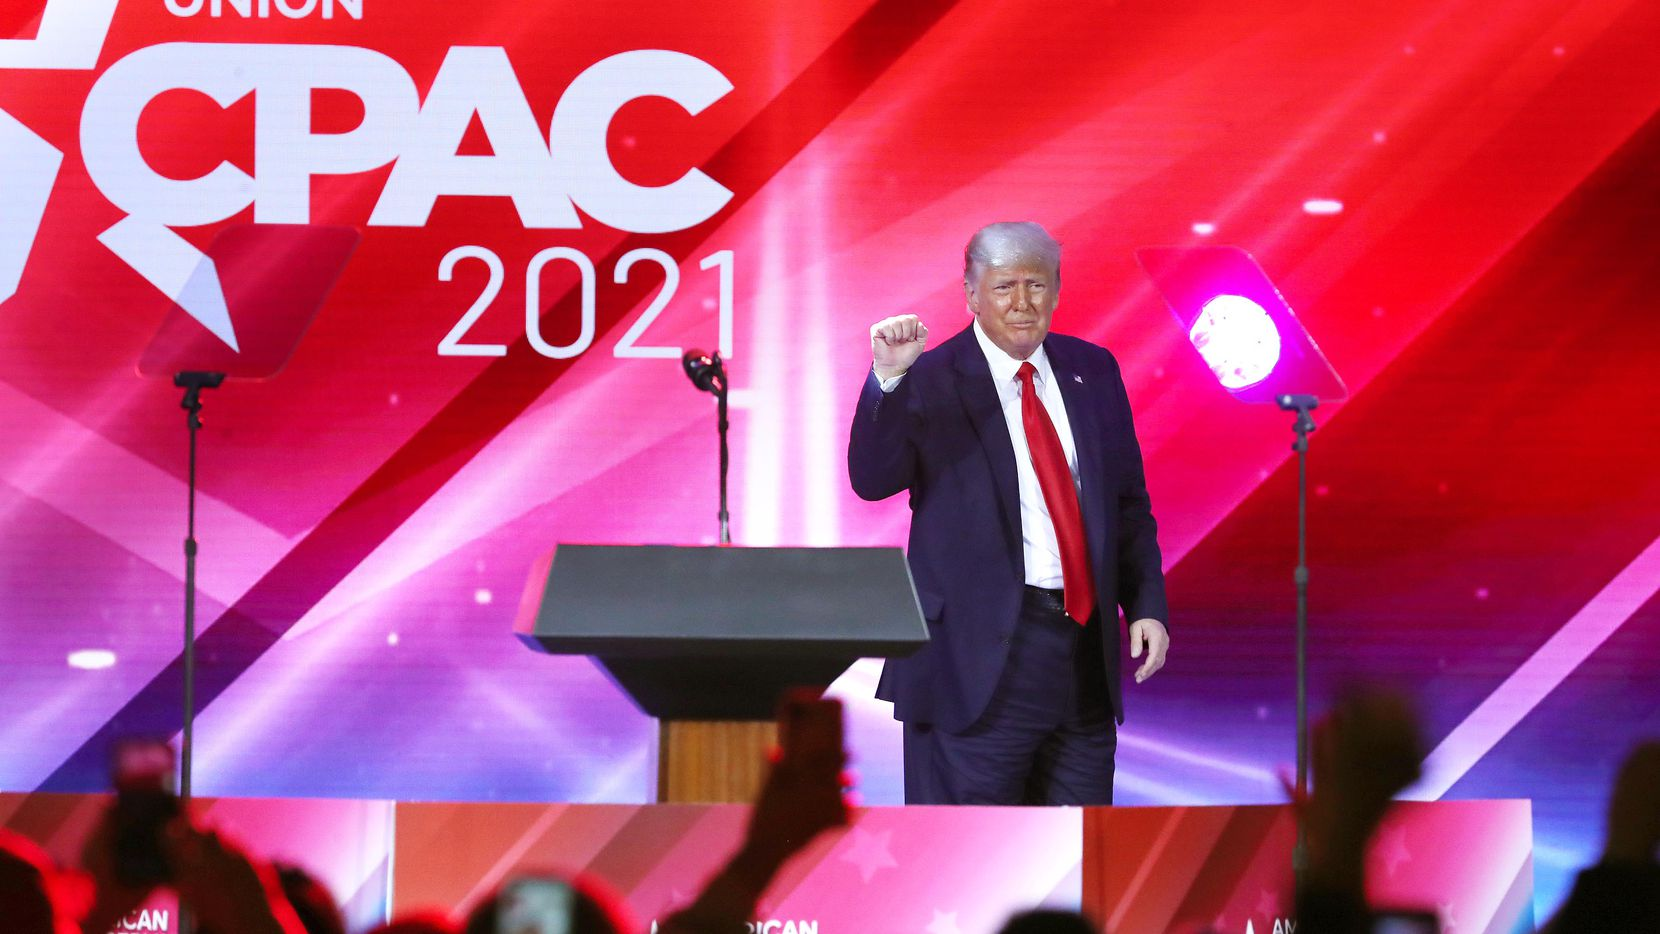 Spectators cheer wildly as former President Donald Trump finishes his speech during CPAC at the Hyatt Regency in Orlando on February 28, 2021.